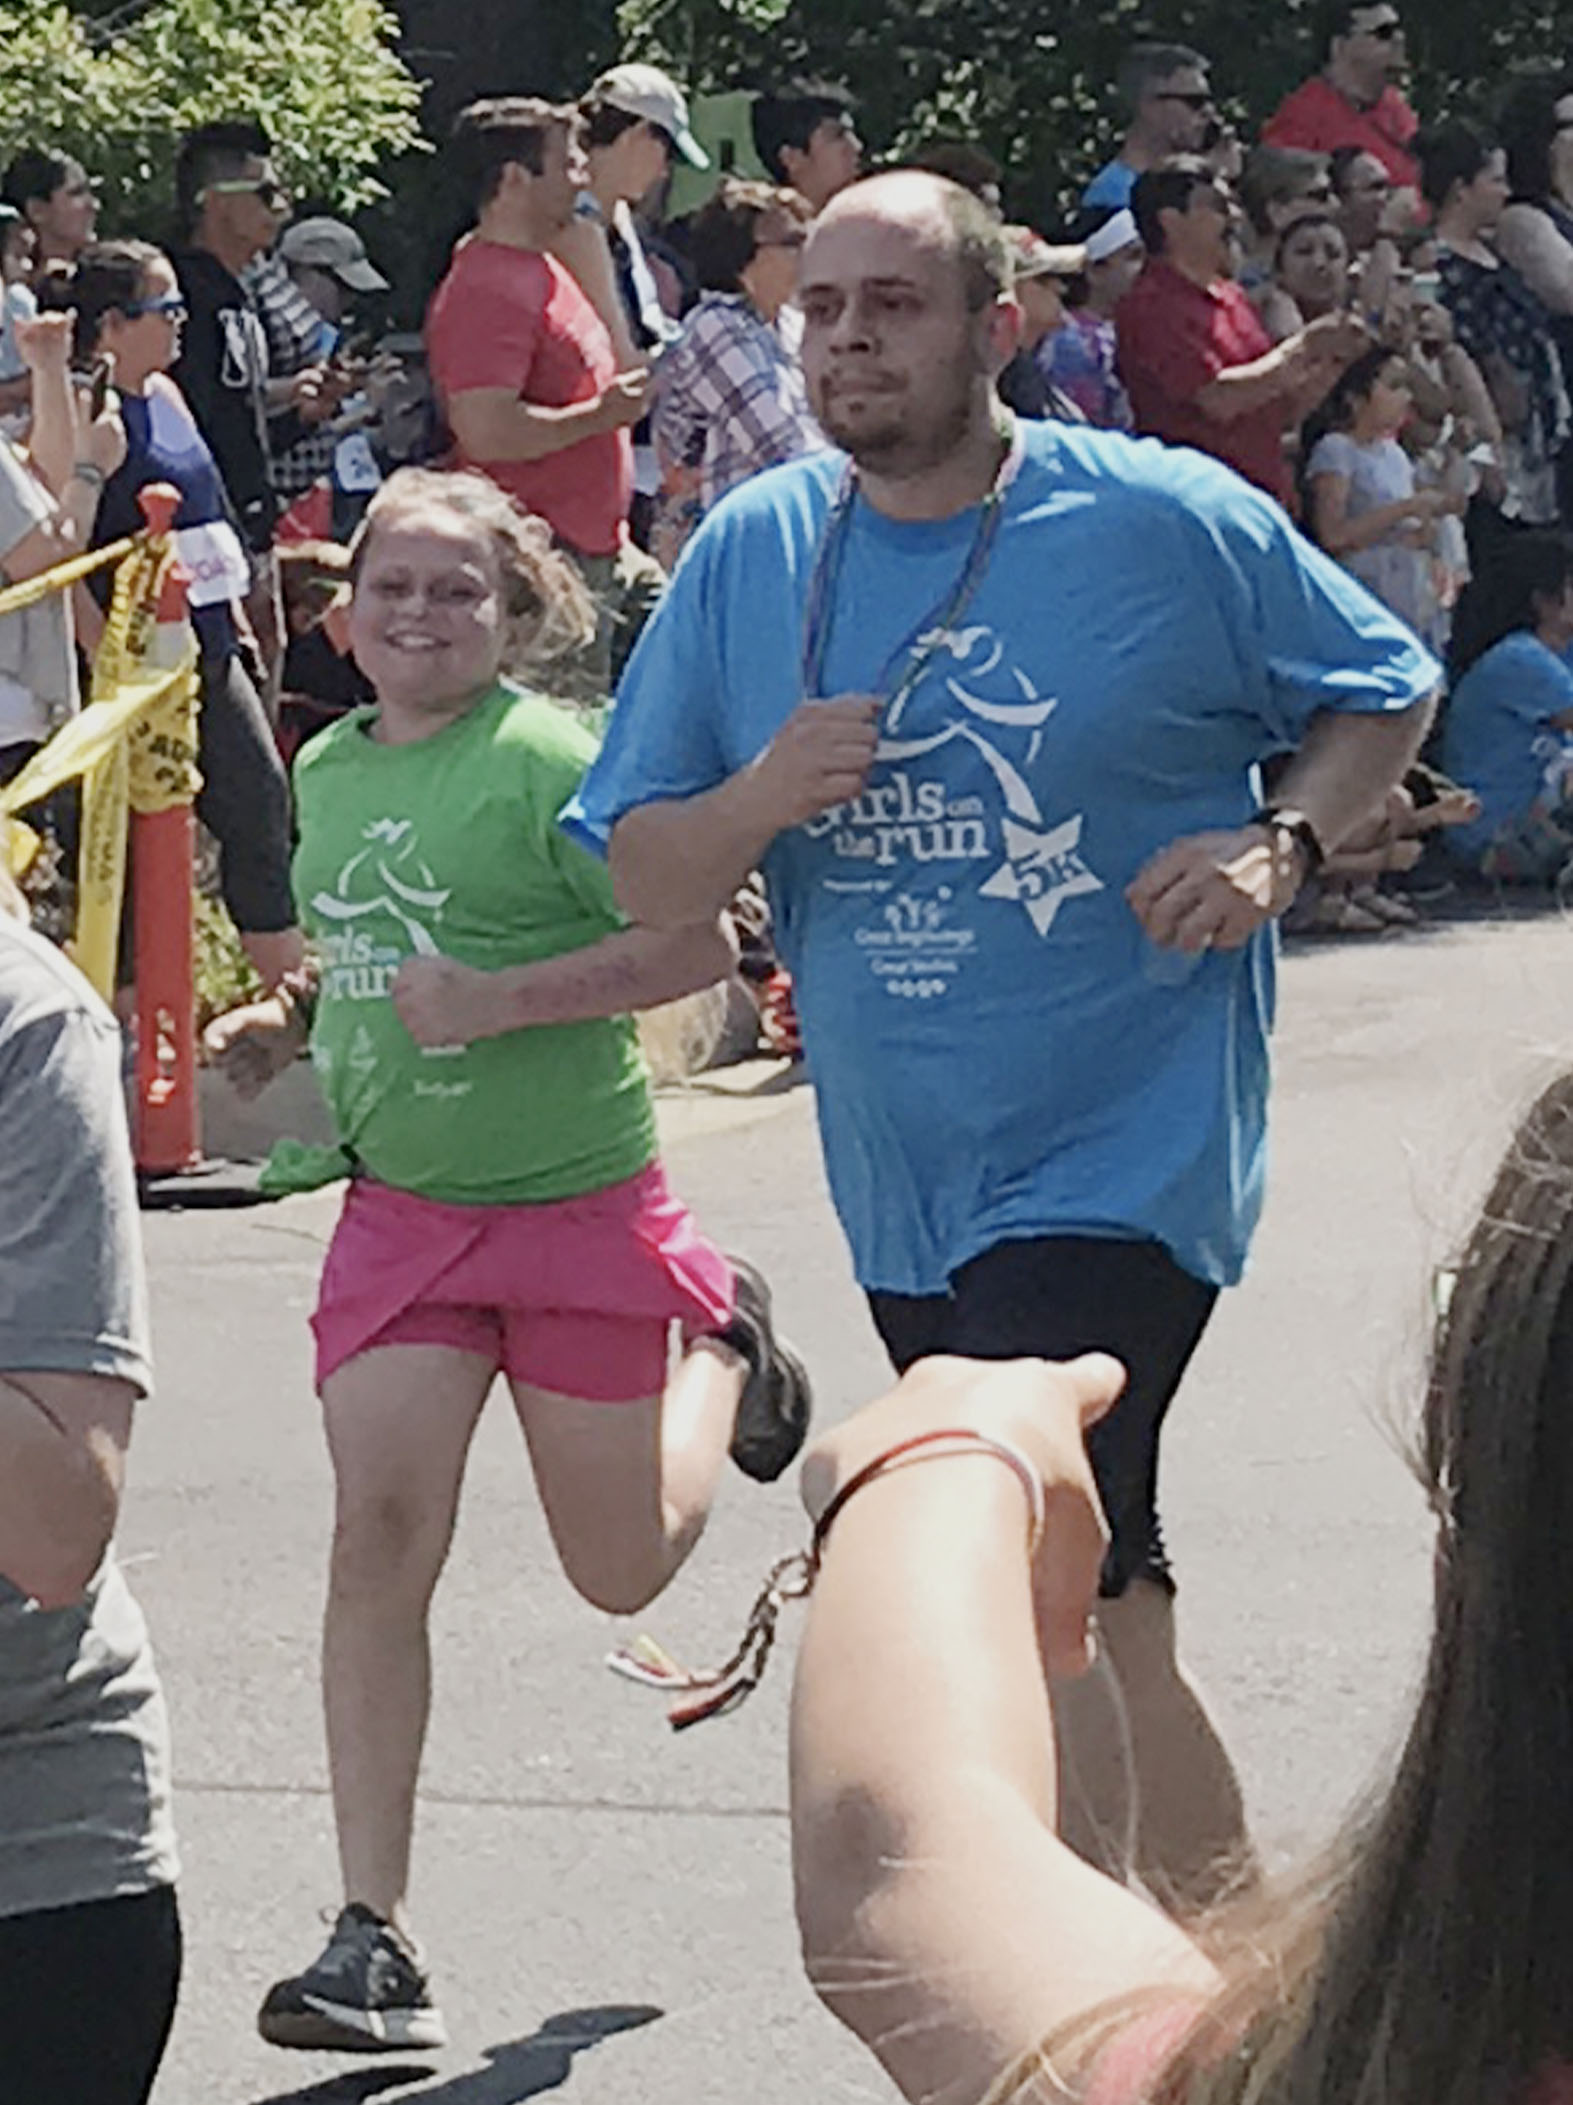 Running a 5K a week after completing proton therapy